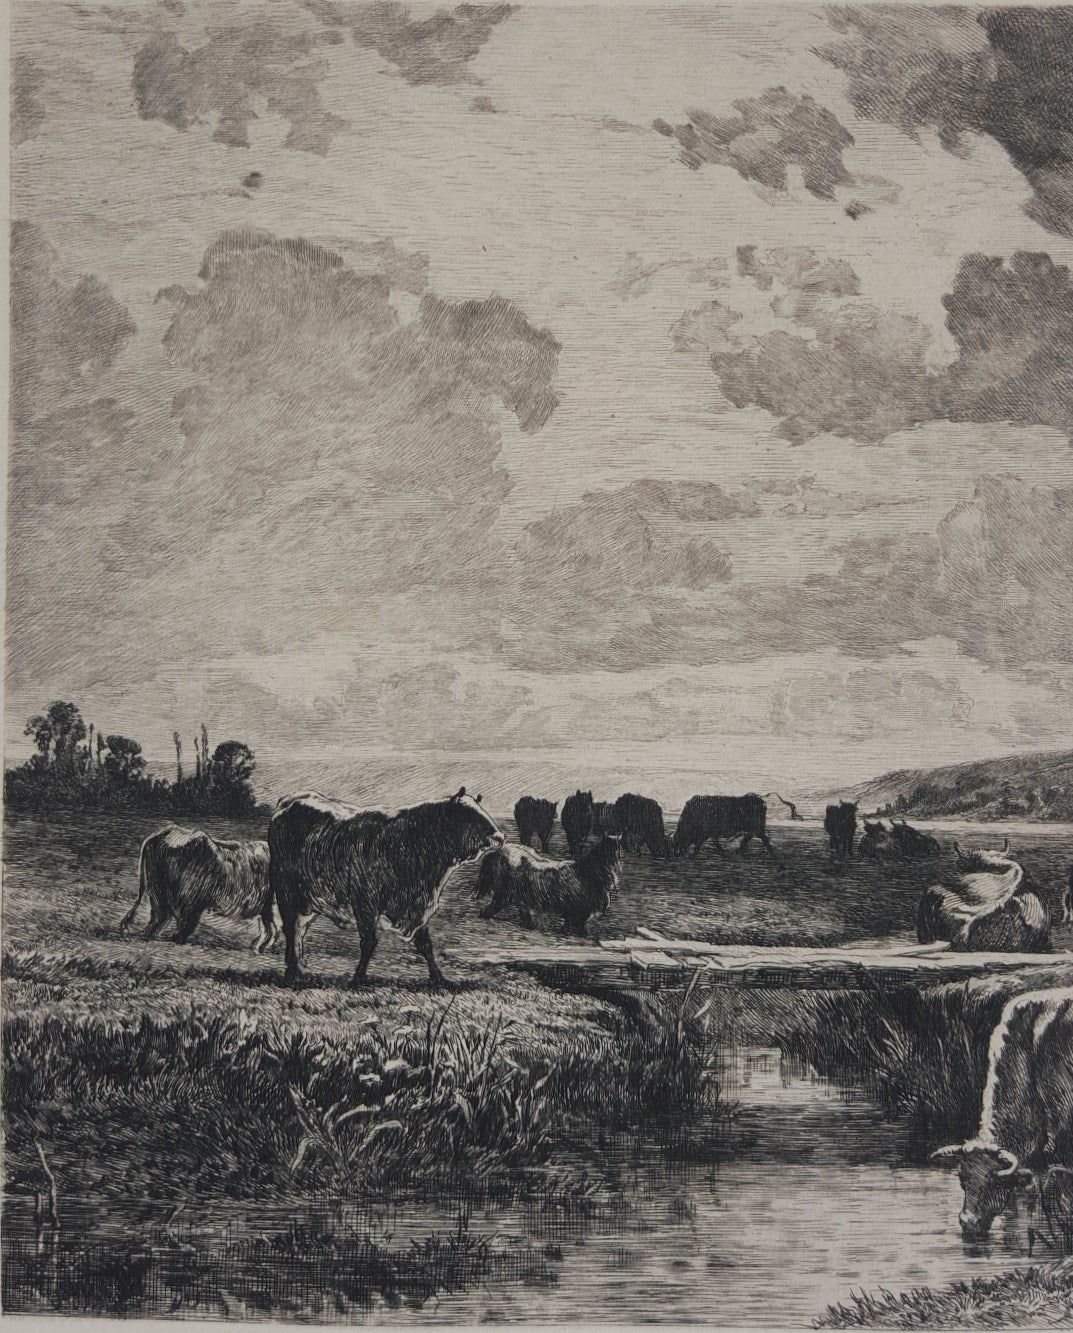 Valle de la Touque Normandie, Sevres - Barbizon School Print by Constant Troyon